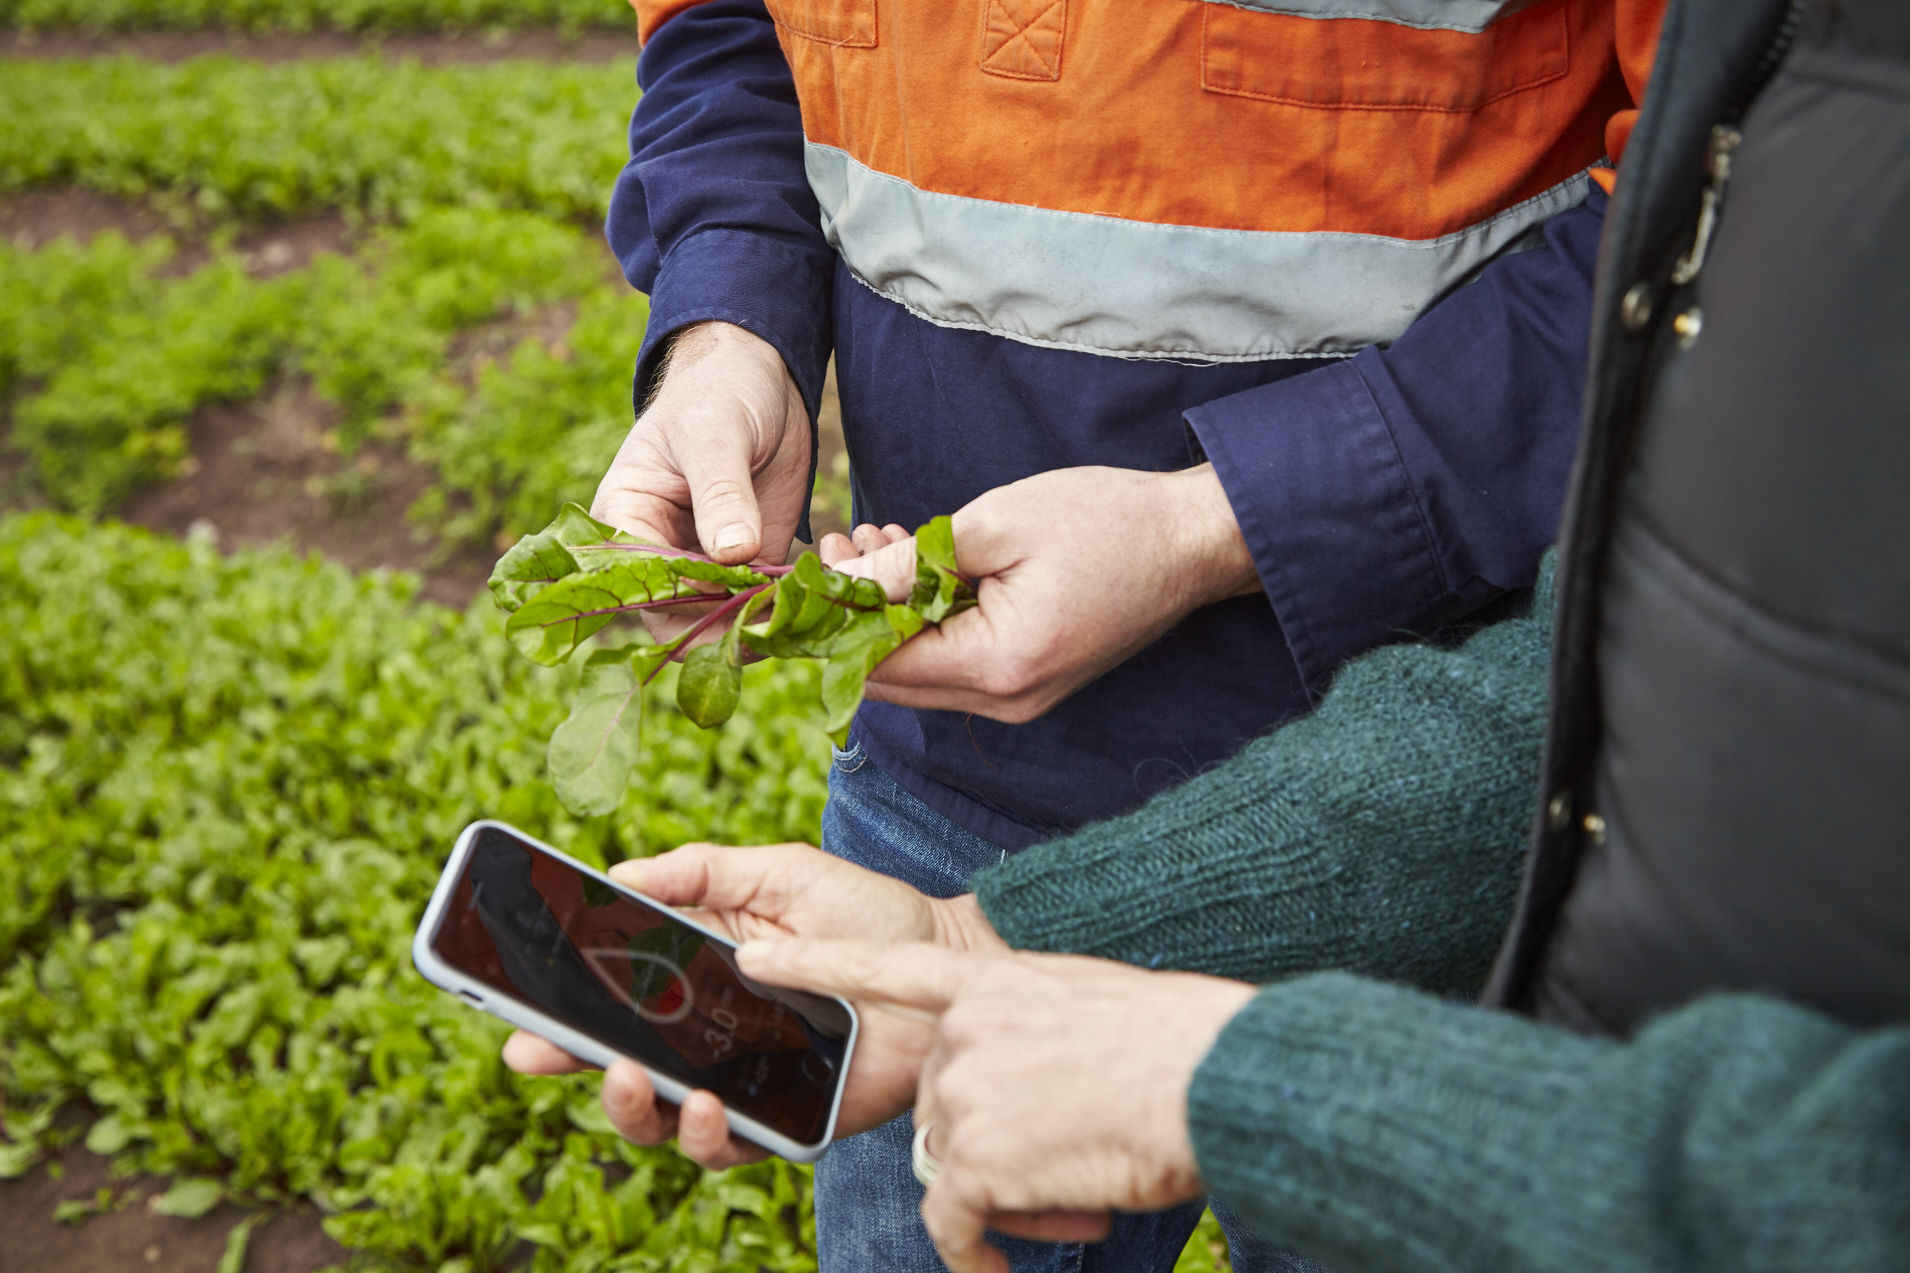 Image of the Yield's smartphone app being used on a farm